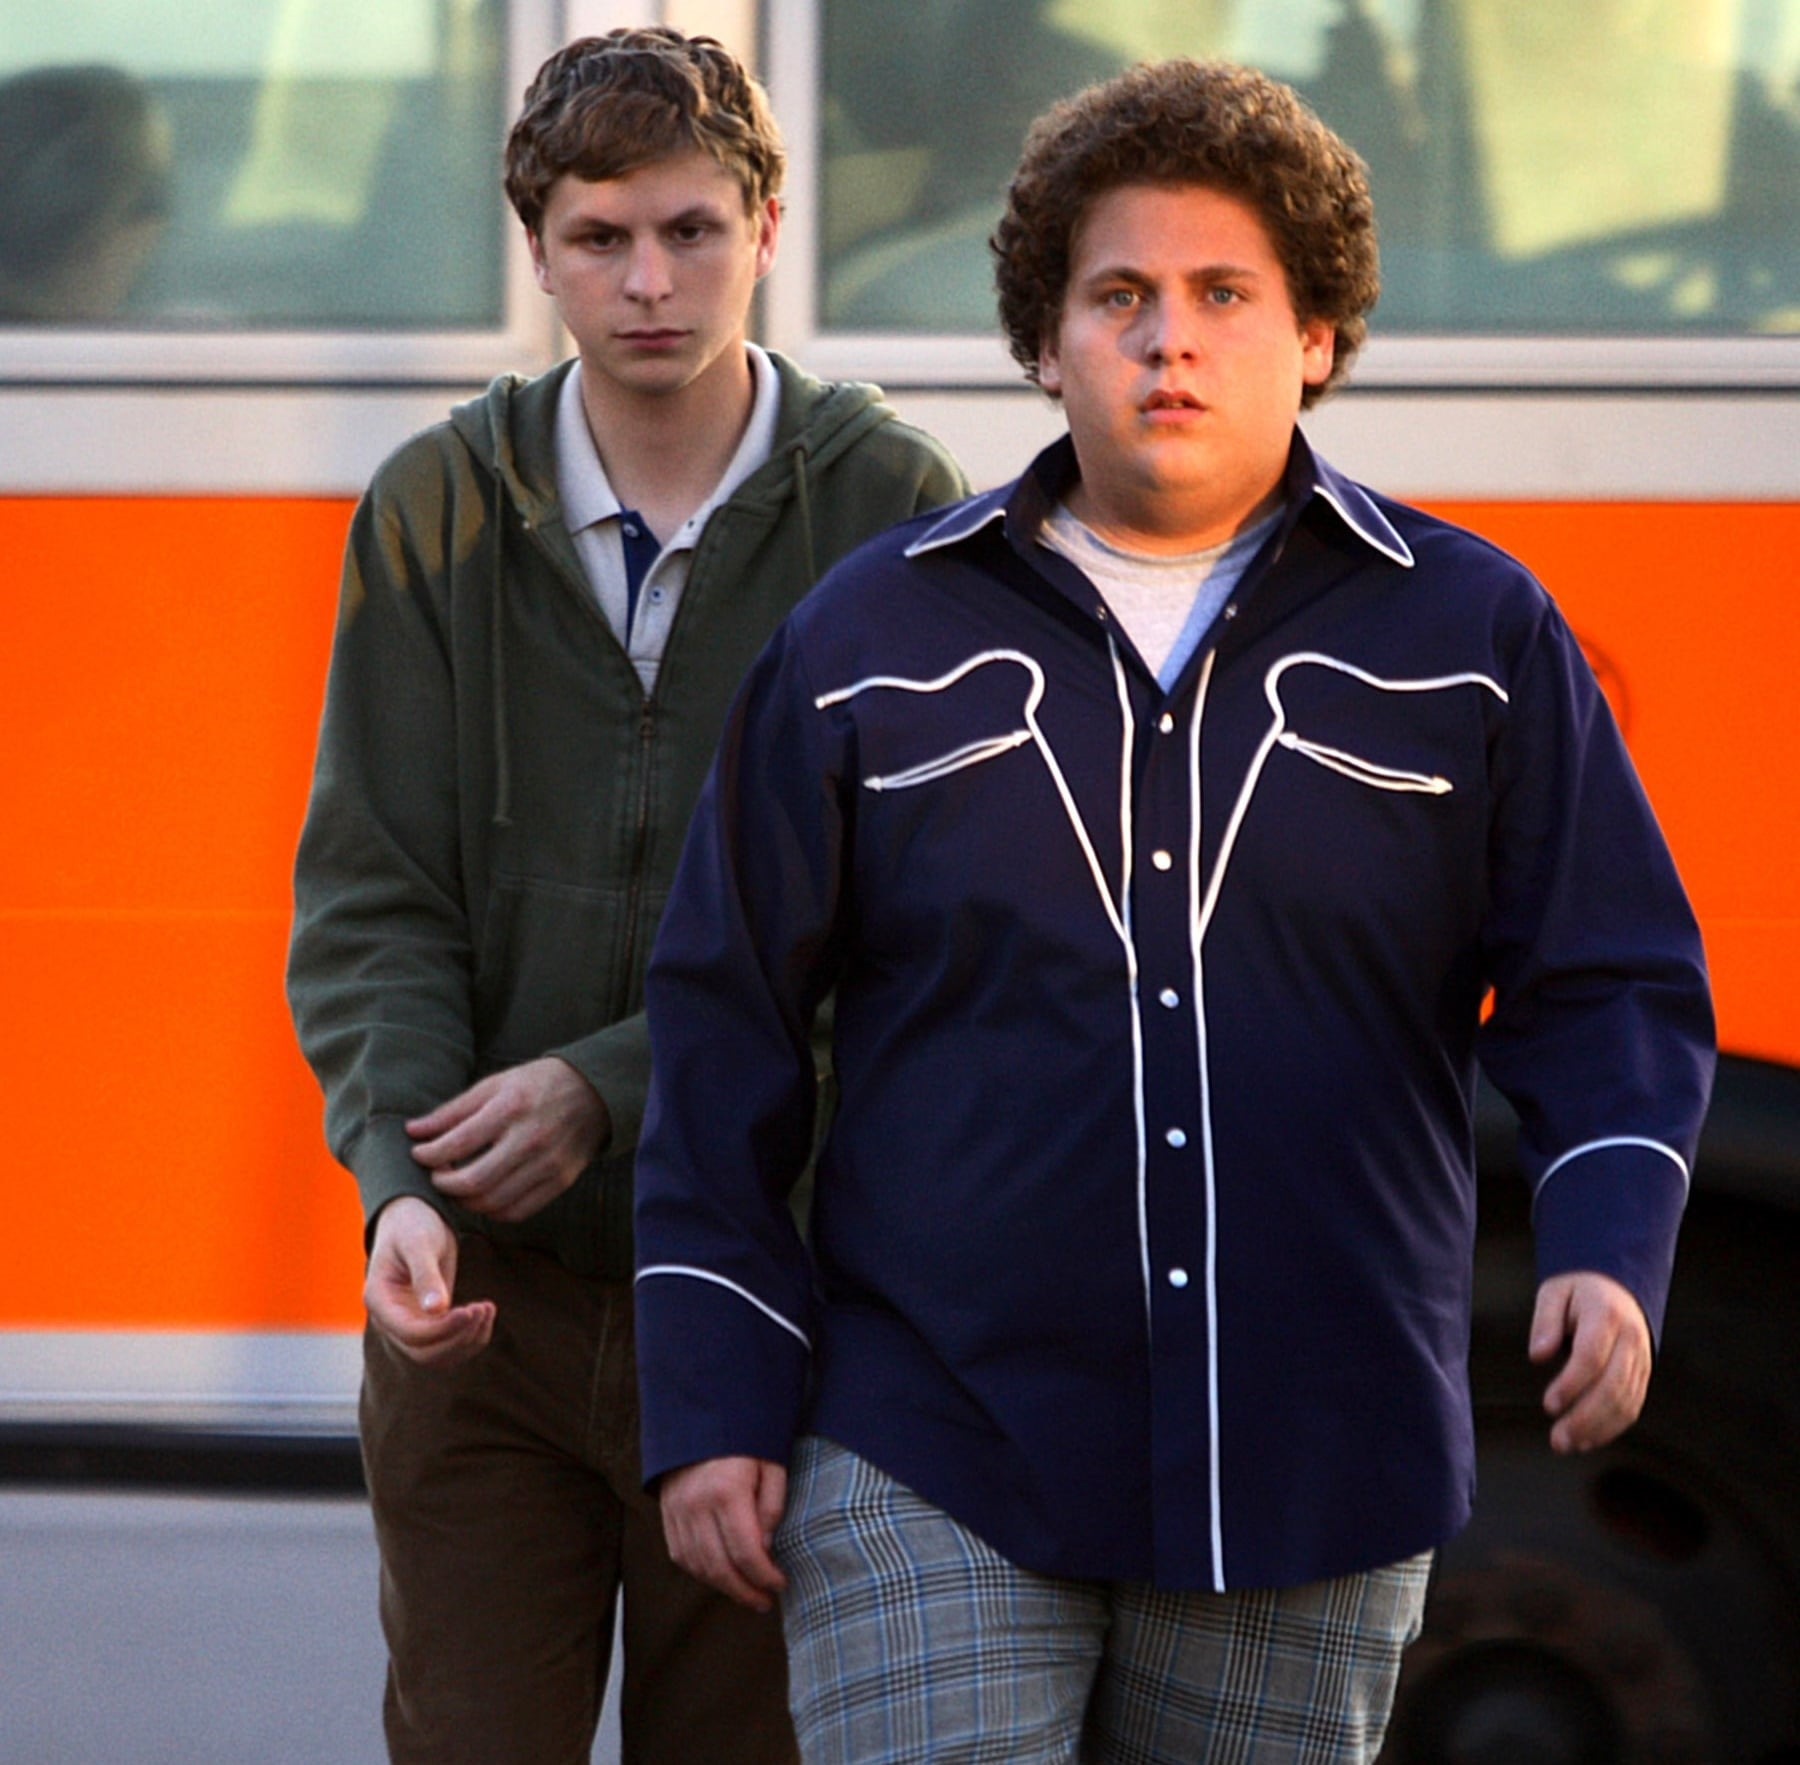 superbad_2007_netflix_movies_to watch_when_high_ozone_discovery_toronto_gta